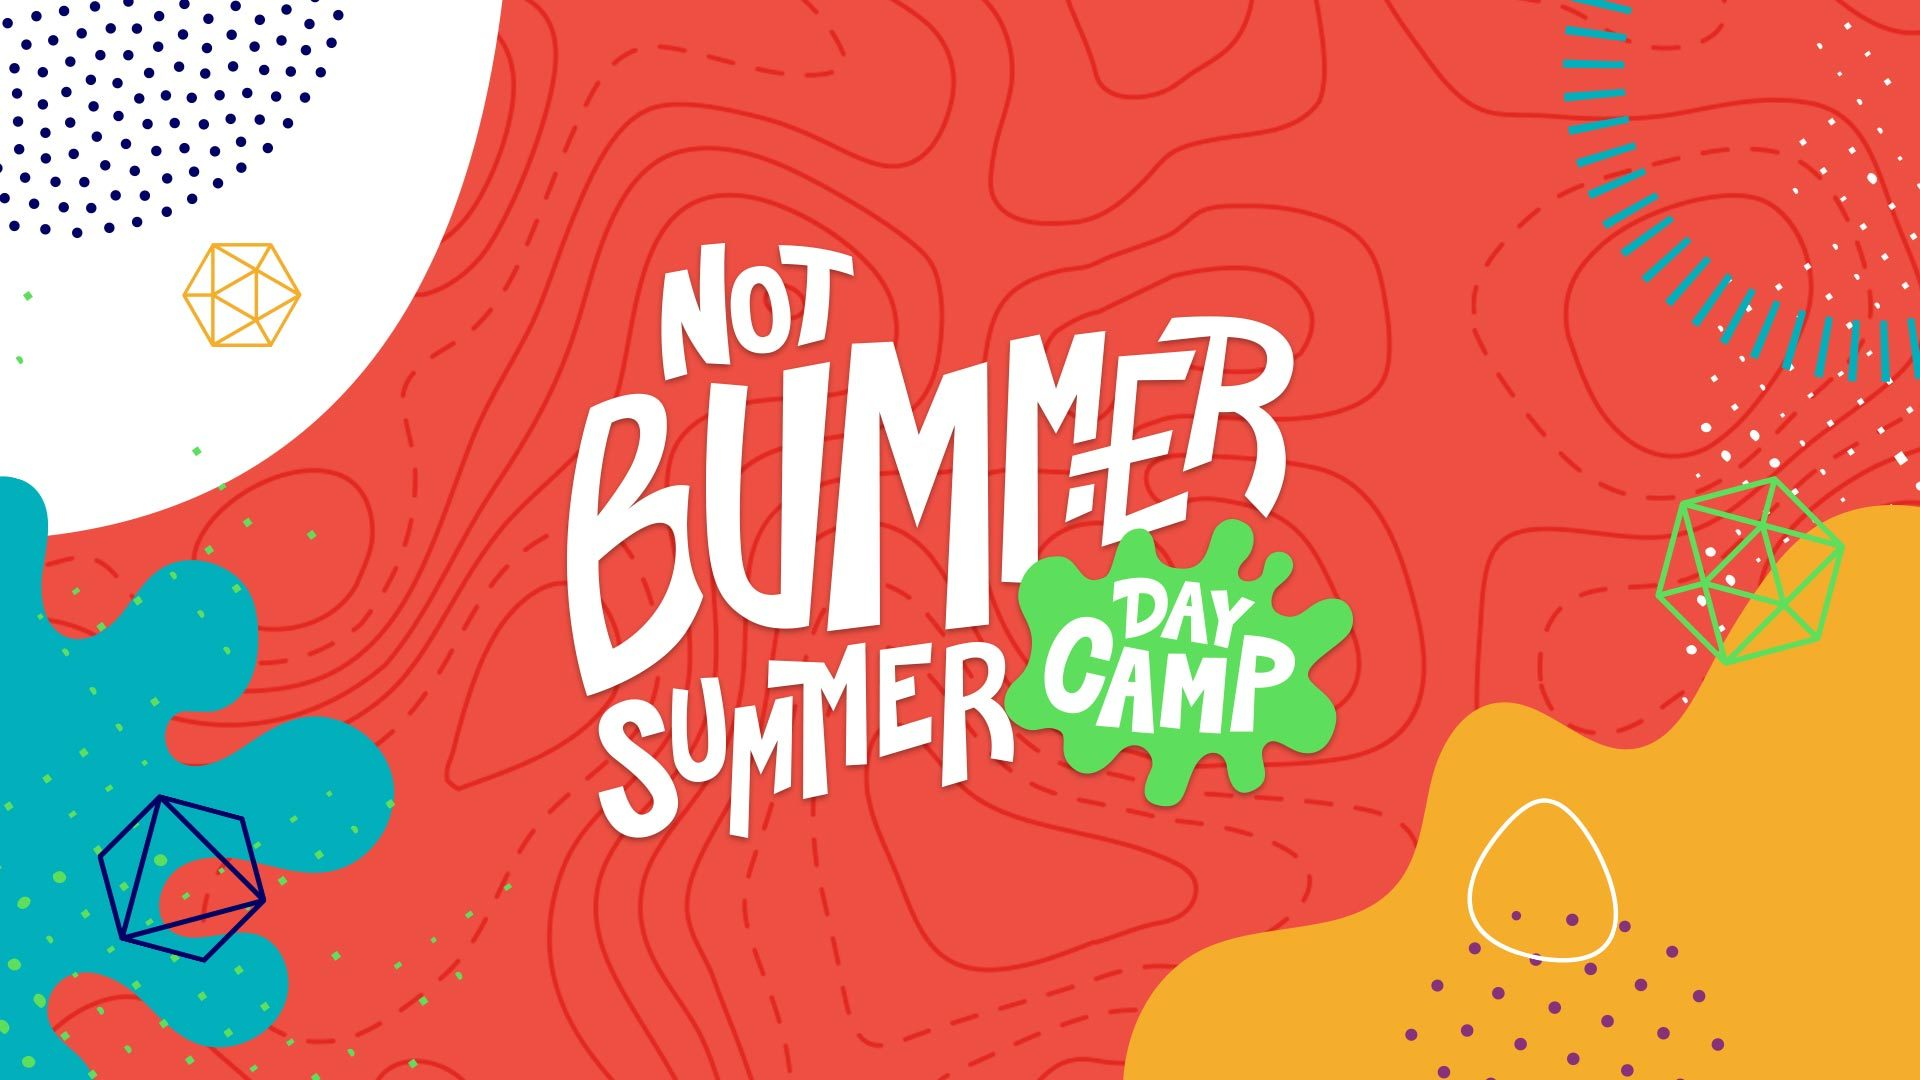 Kotm Not Bummer Summer Day Camp Wide